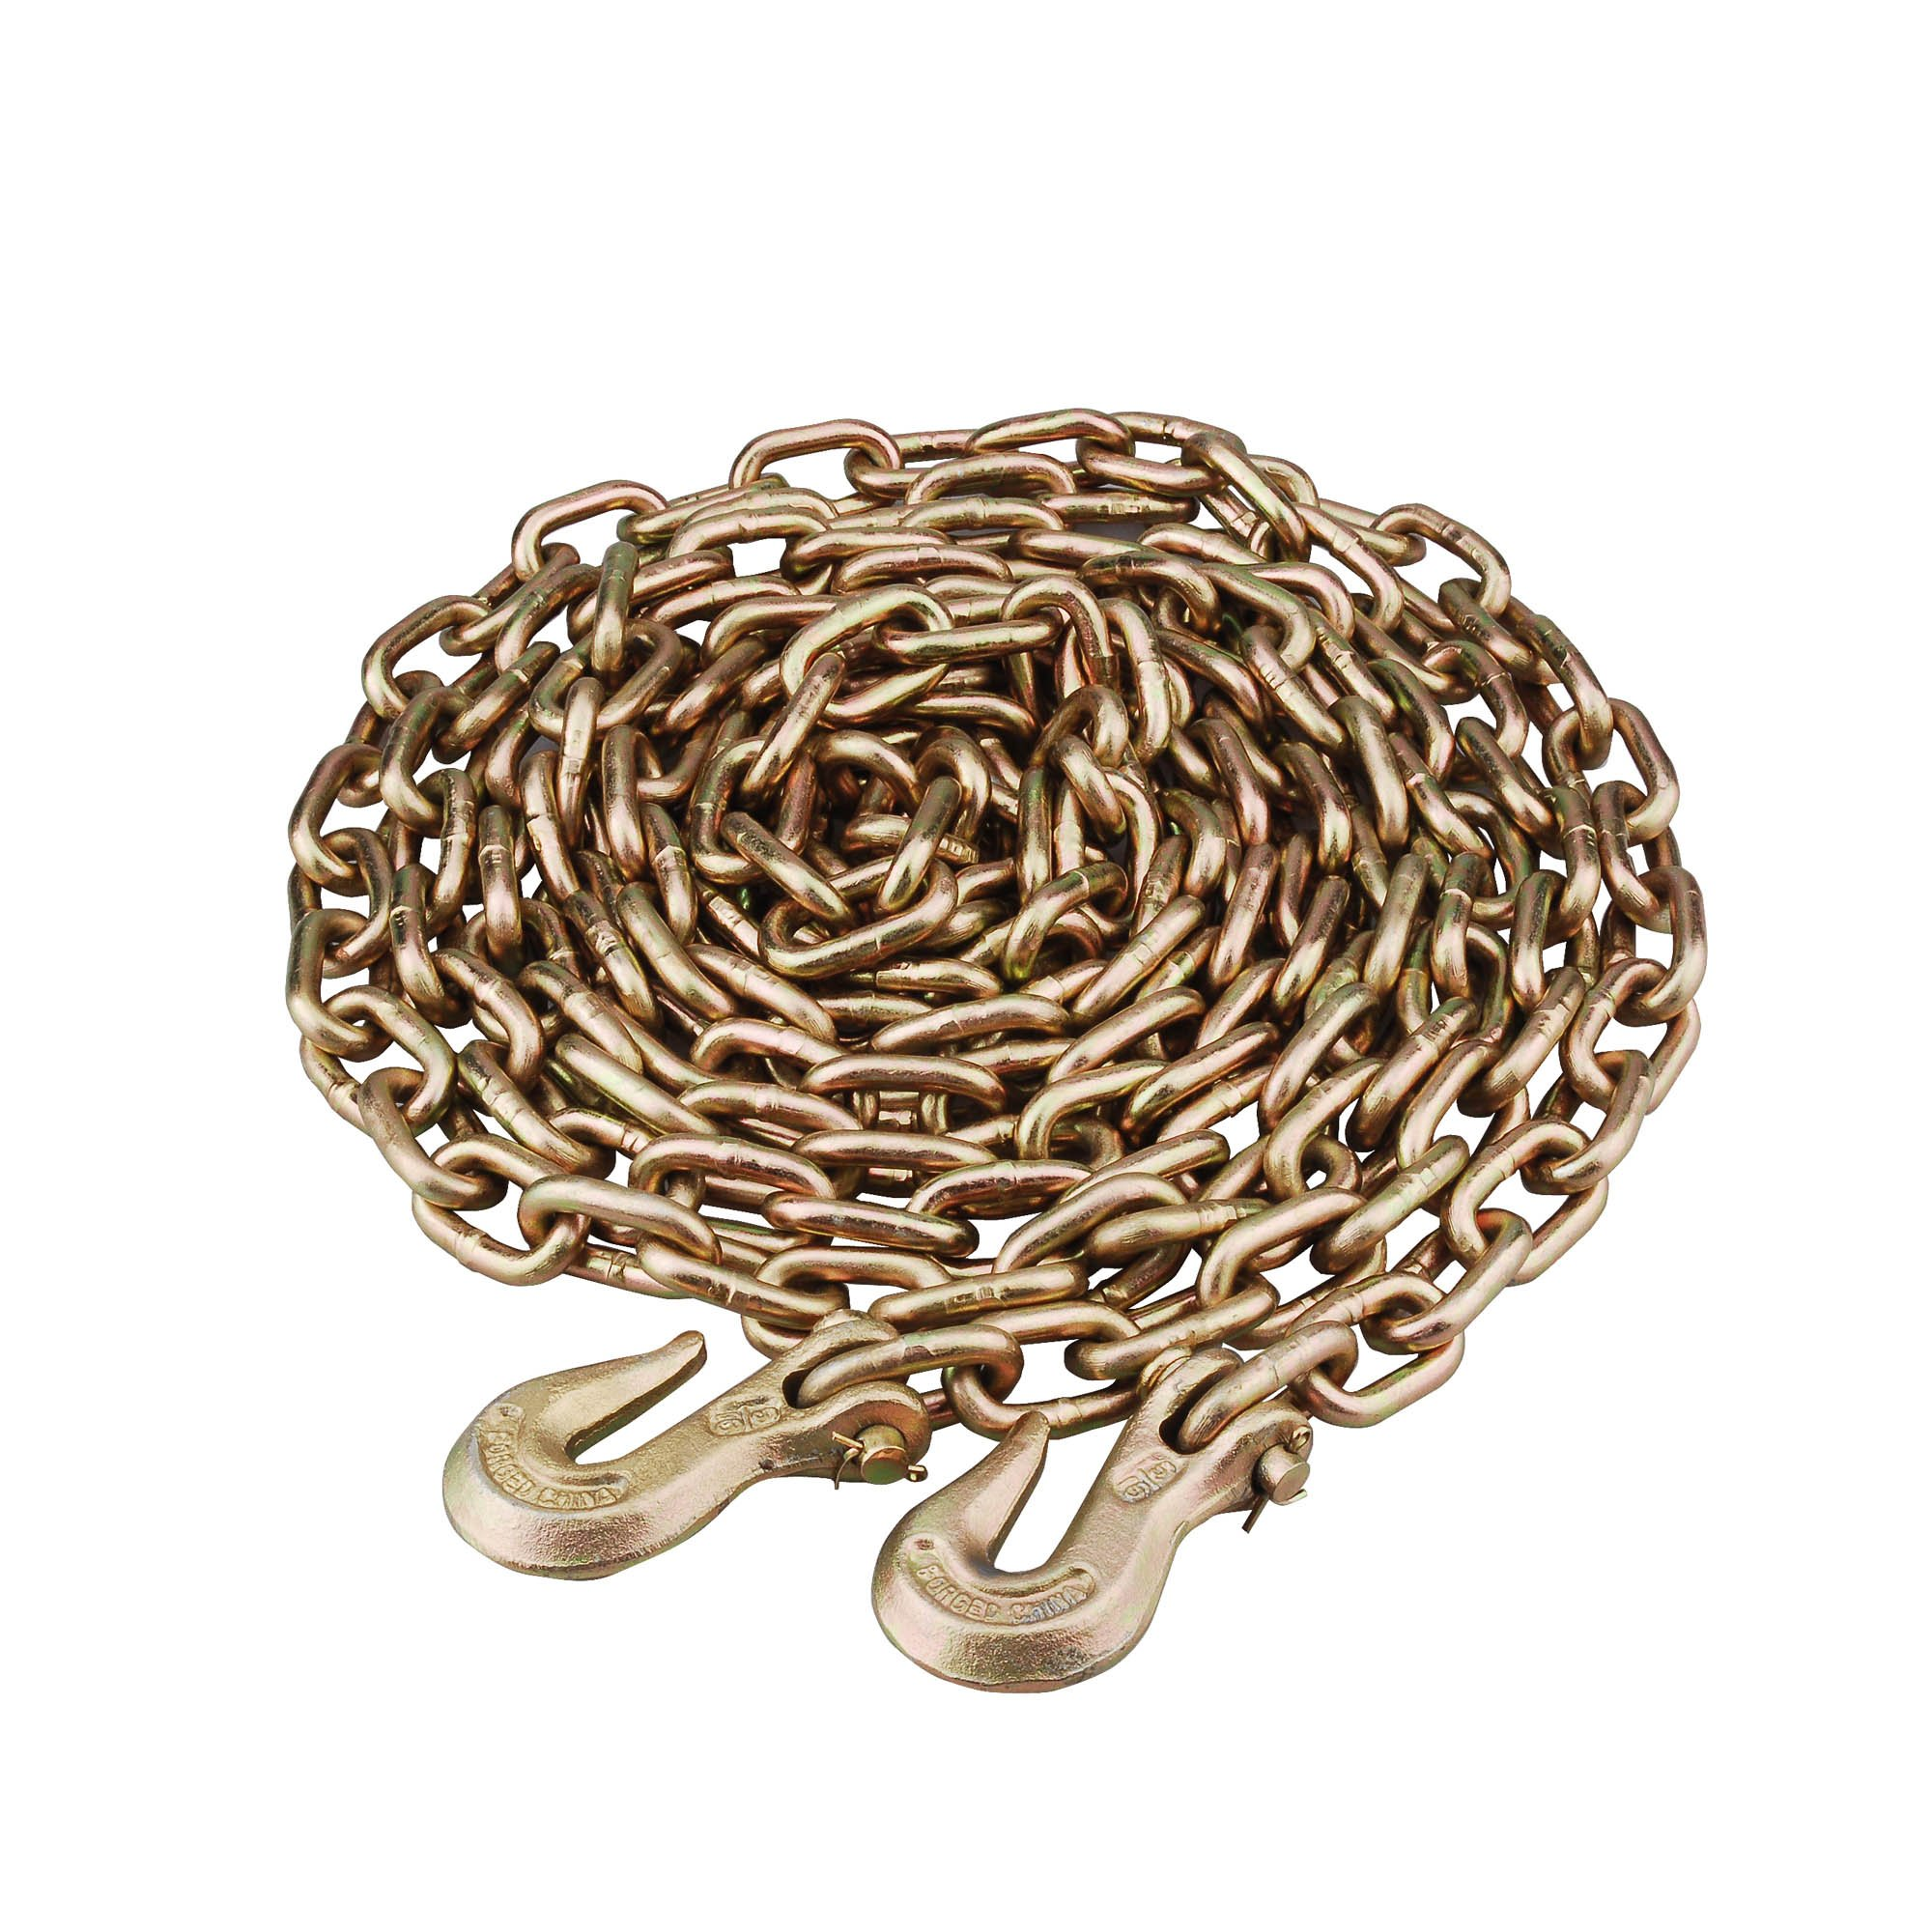 Max Load 36503.0 Truckers Chain (5/16'' x 20') by Max Load